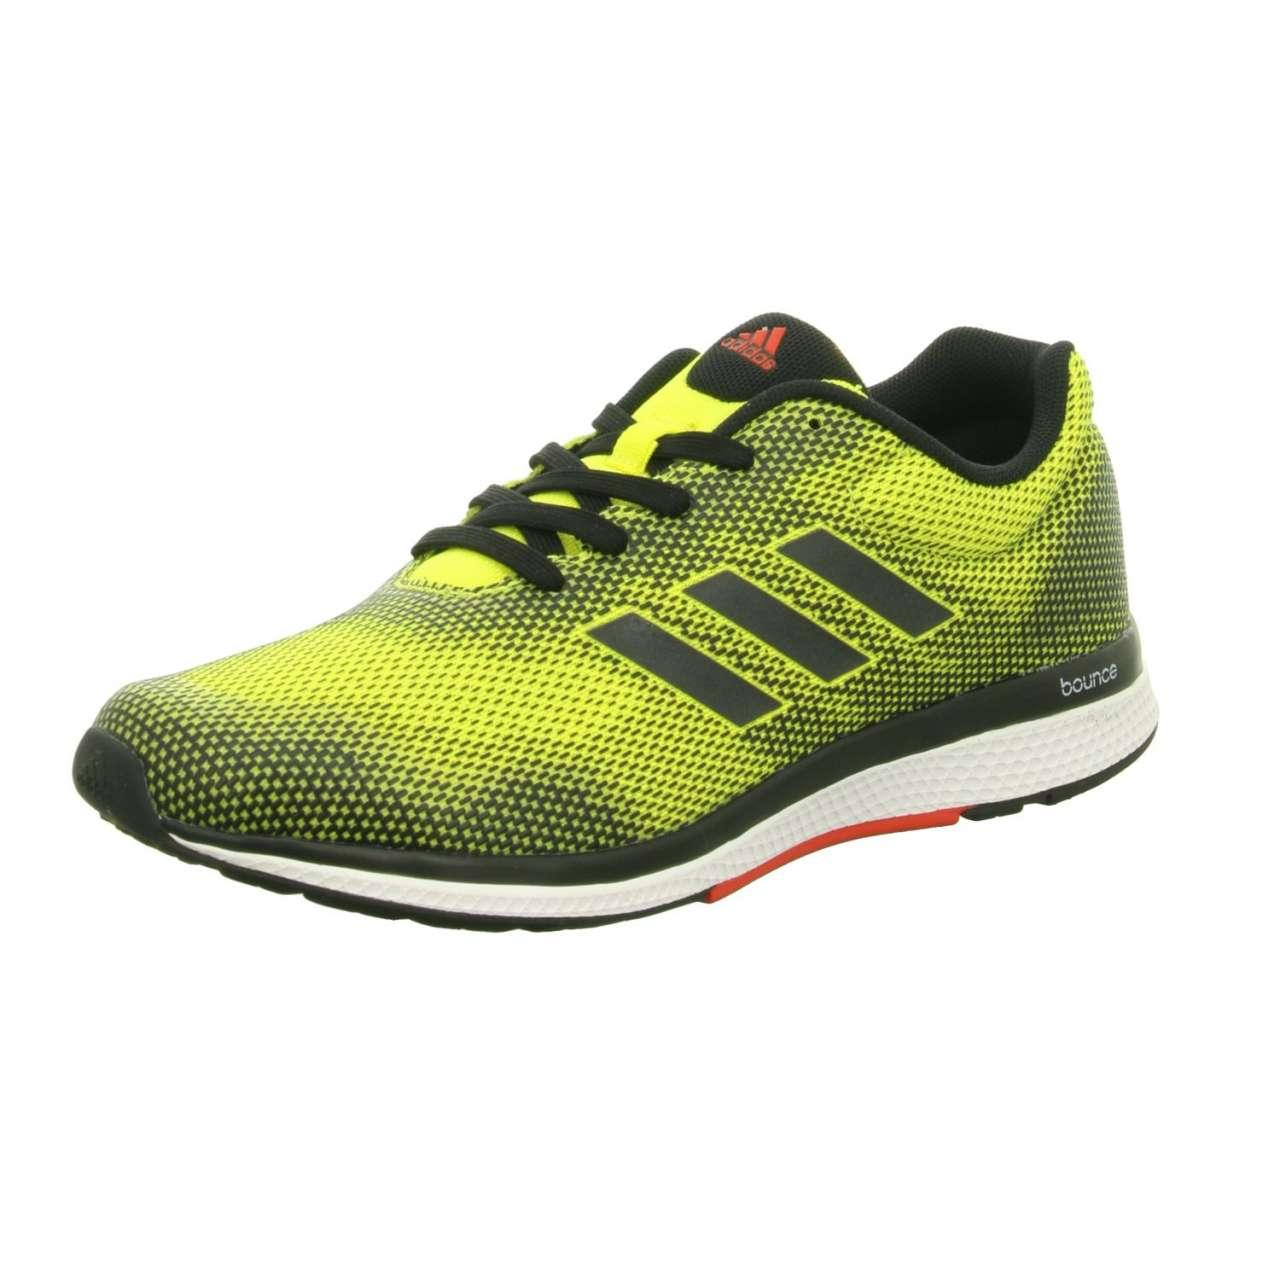 94e141ac1dec5 adidas Trainers Yellow Mana Bounce 2 M Aramis in Yellow for Men - Lyst